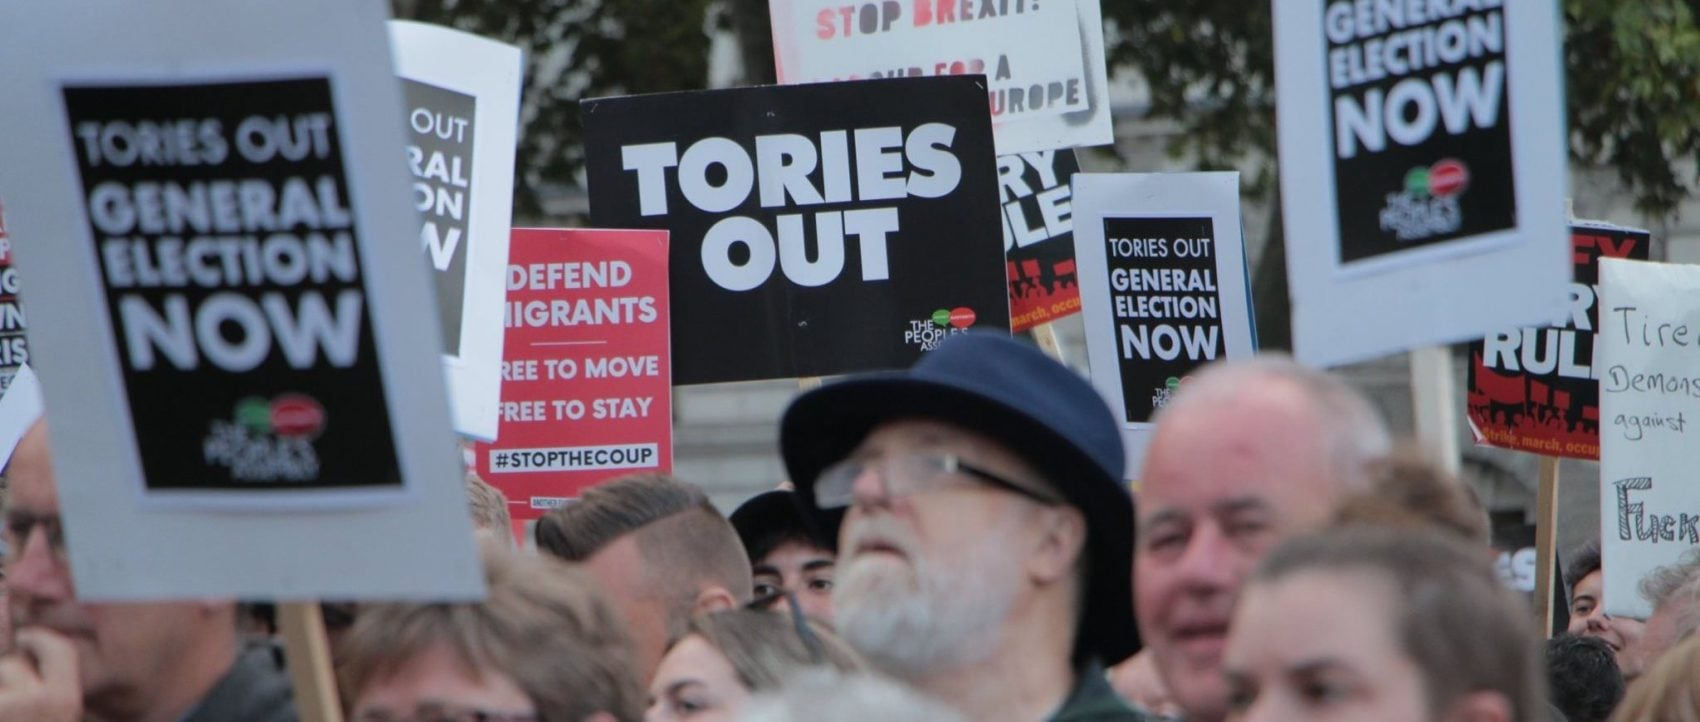 Britain protest against Boris—Tories Out